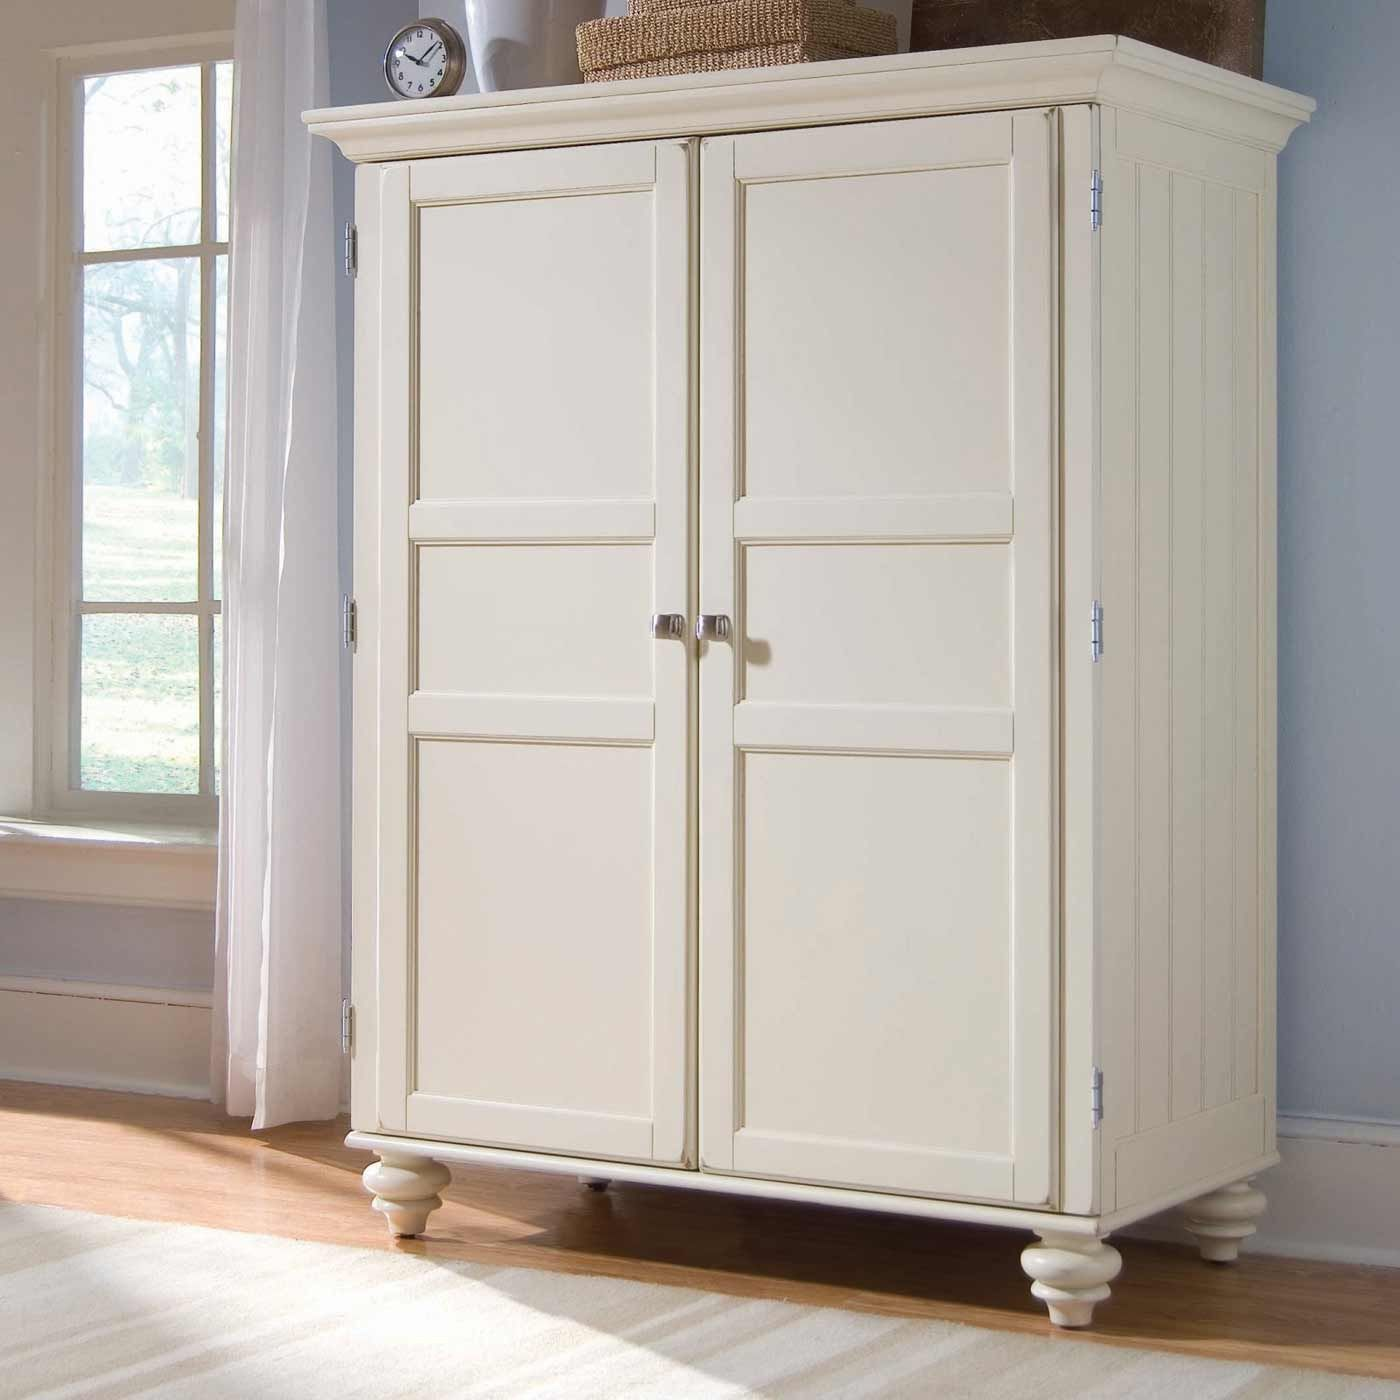 white armoire morgan cheap armoire desk in cream white for the home pinterest white. Black Bedroom Furniture Sets. Home Design Ideas